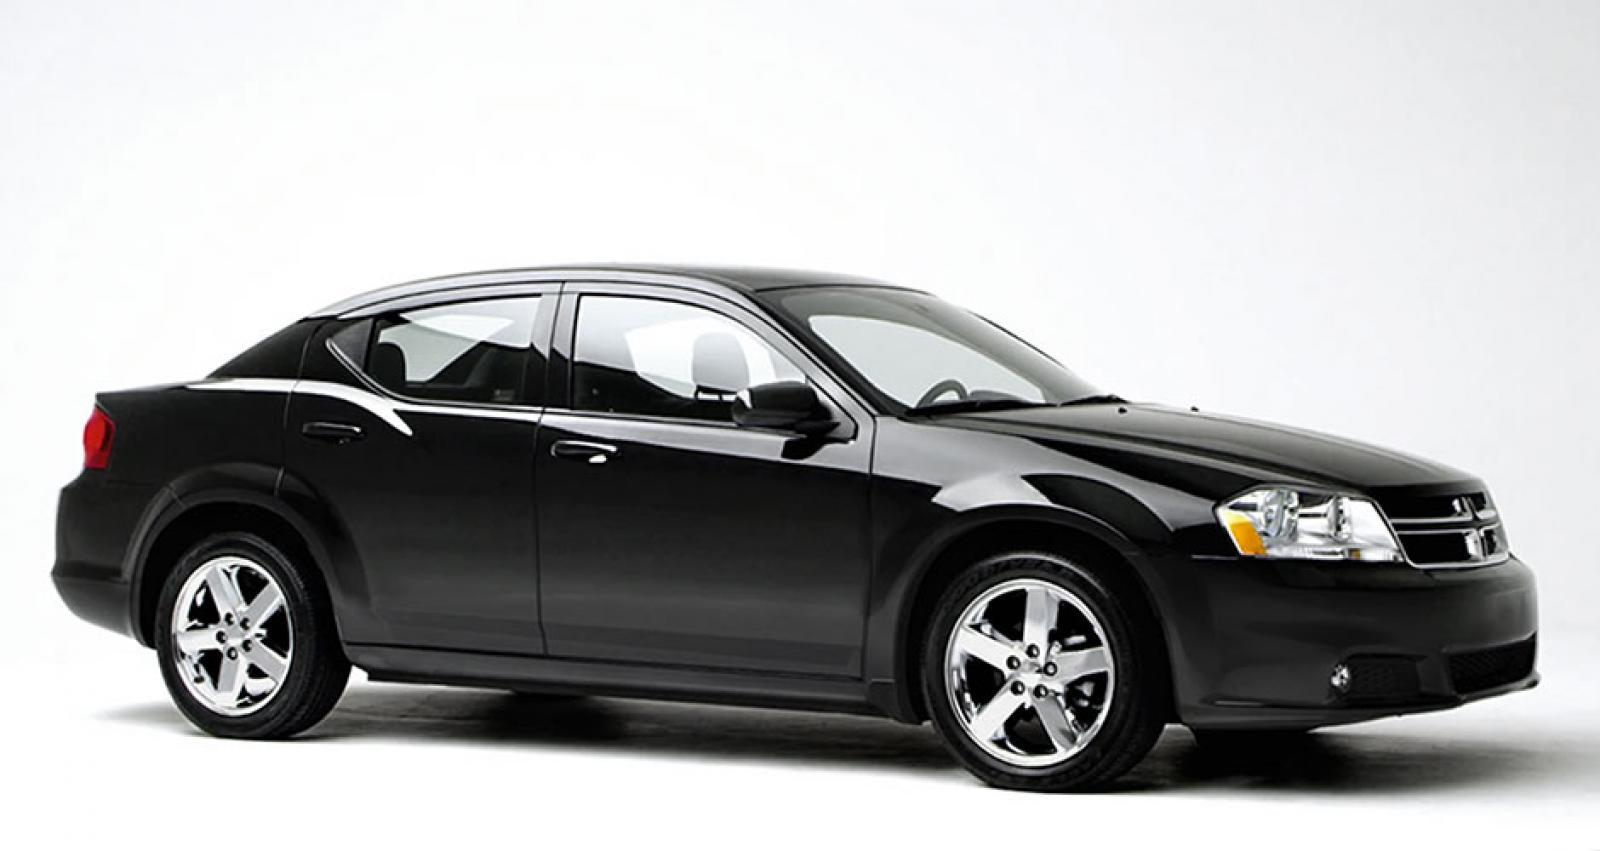 2014 dodge avenger - information and photos - zombiedrive